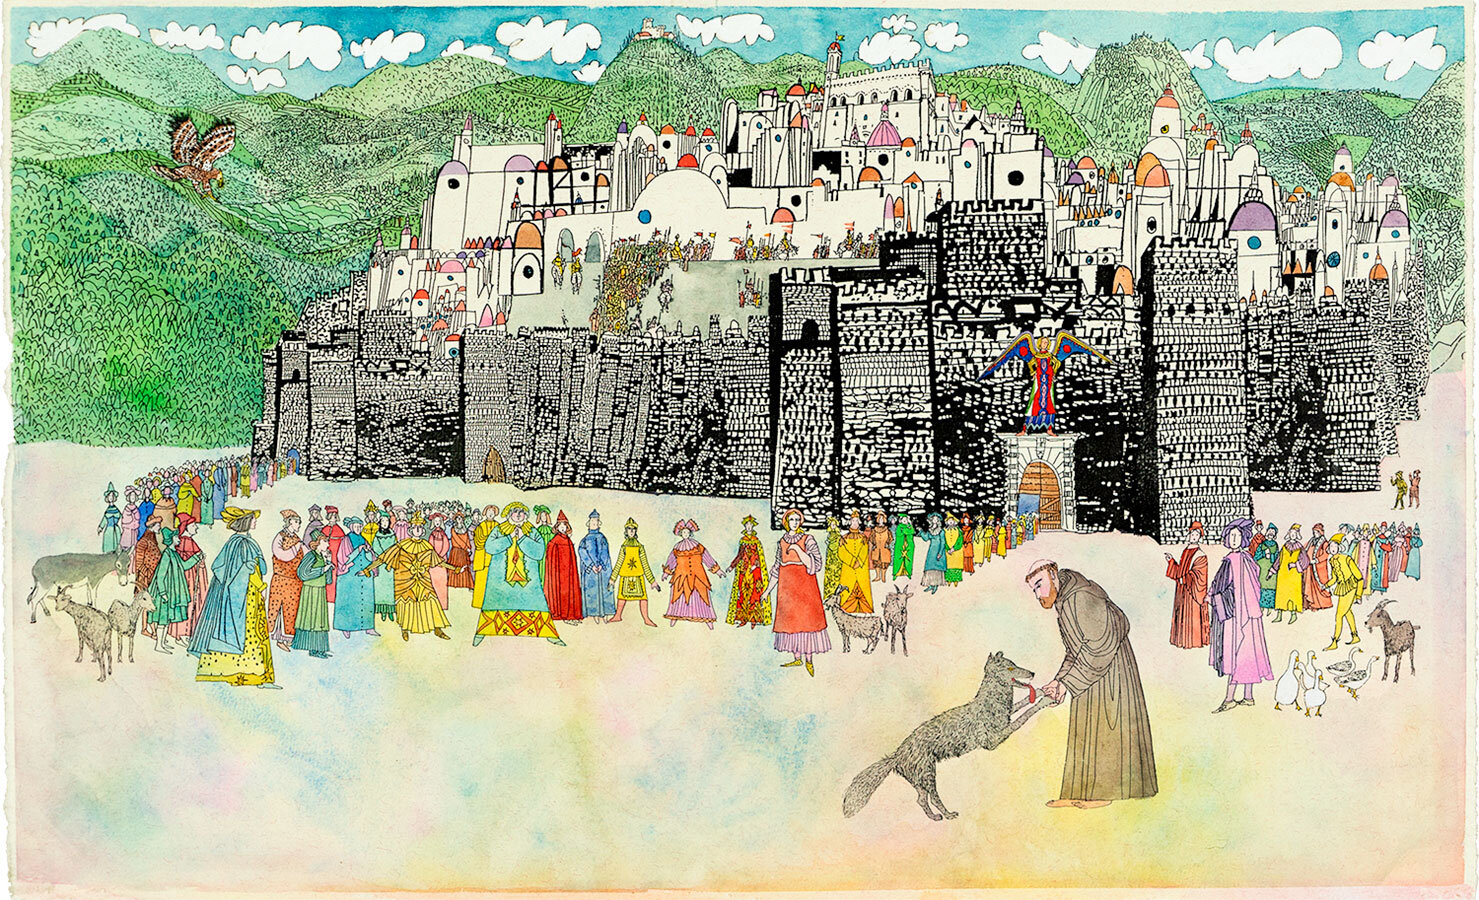 Francis-tames-brother-wolf-in-Gubbio-Italy-original-illustration-from-Saint-Francis-by-Brian-Wildsmith.jpg